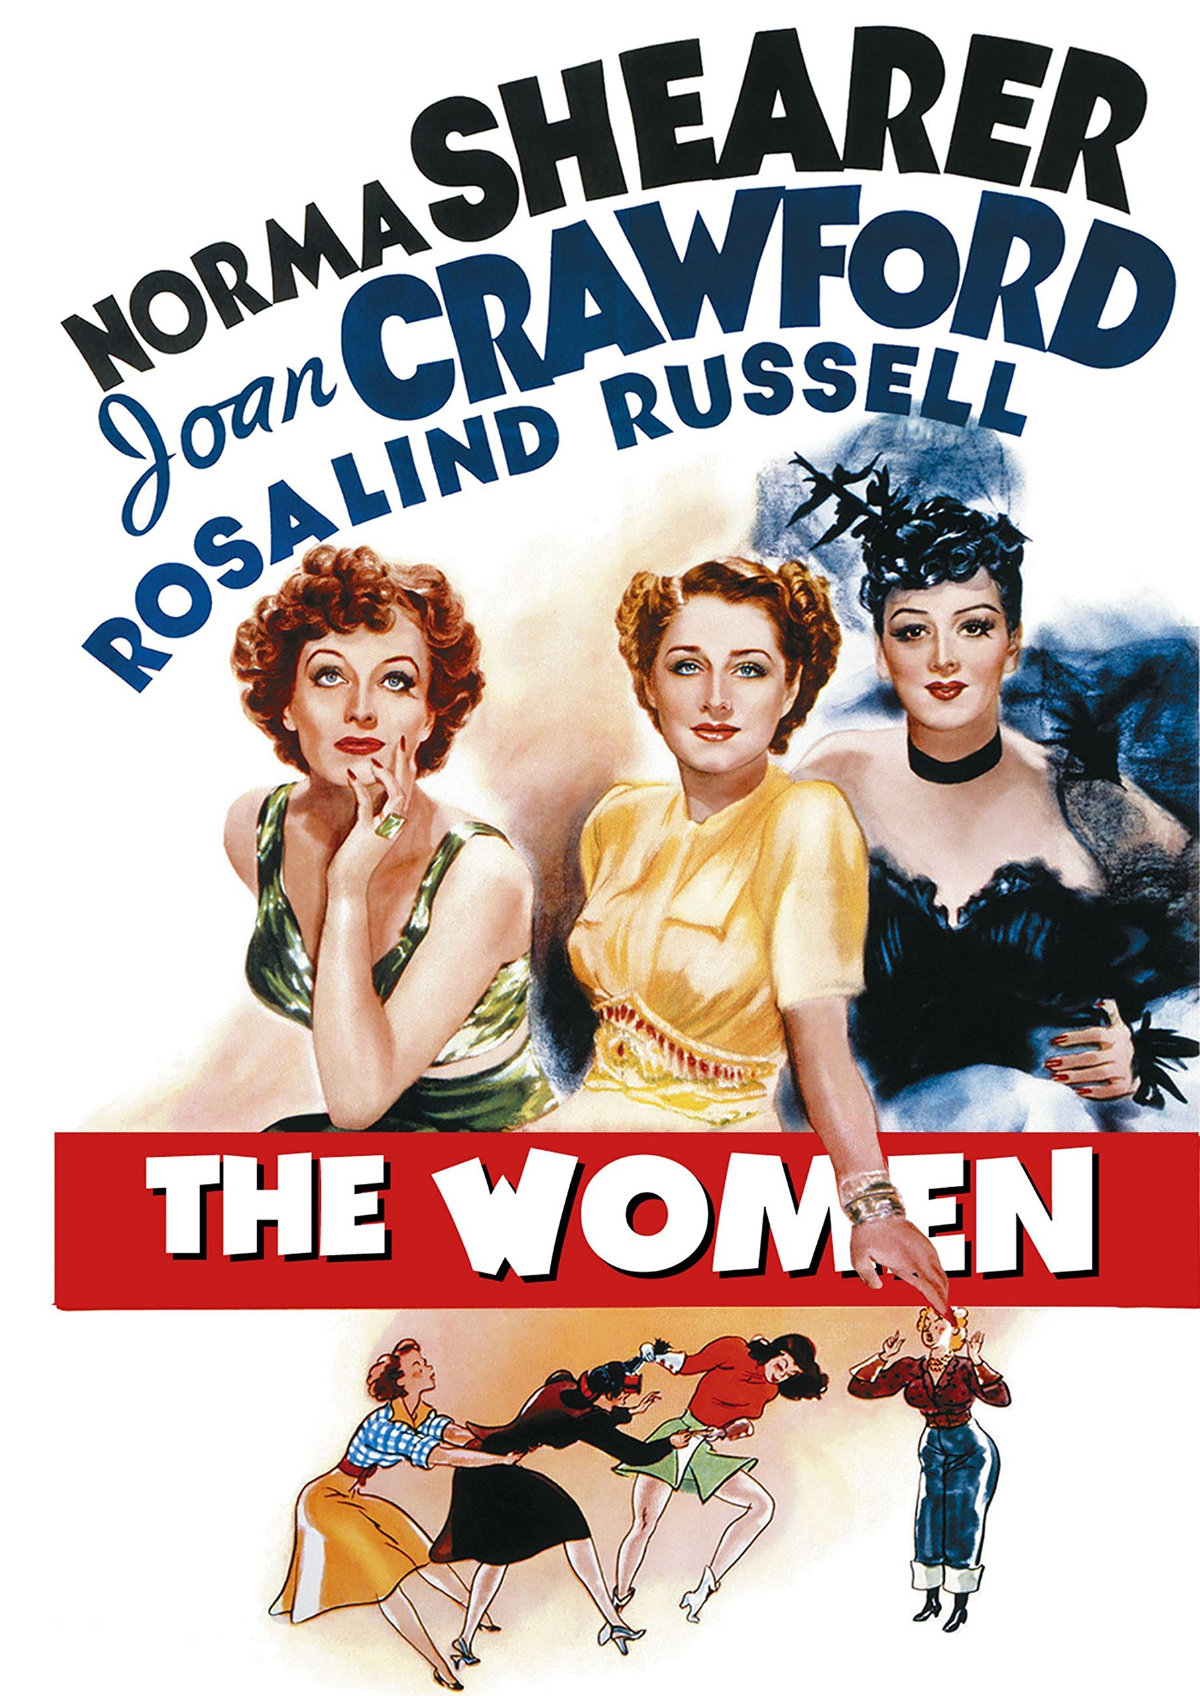 'The Women' movie poster